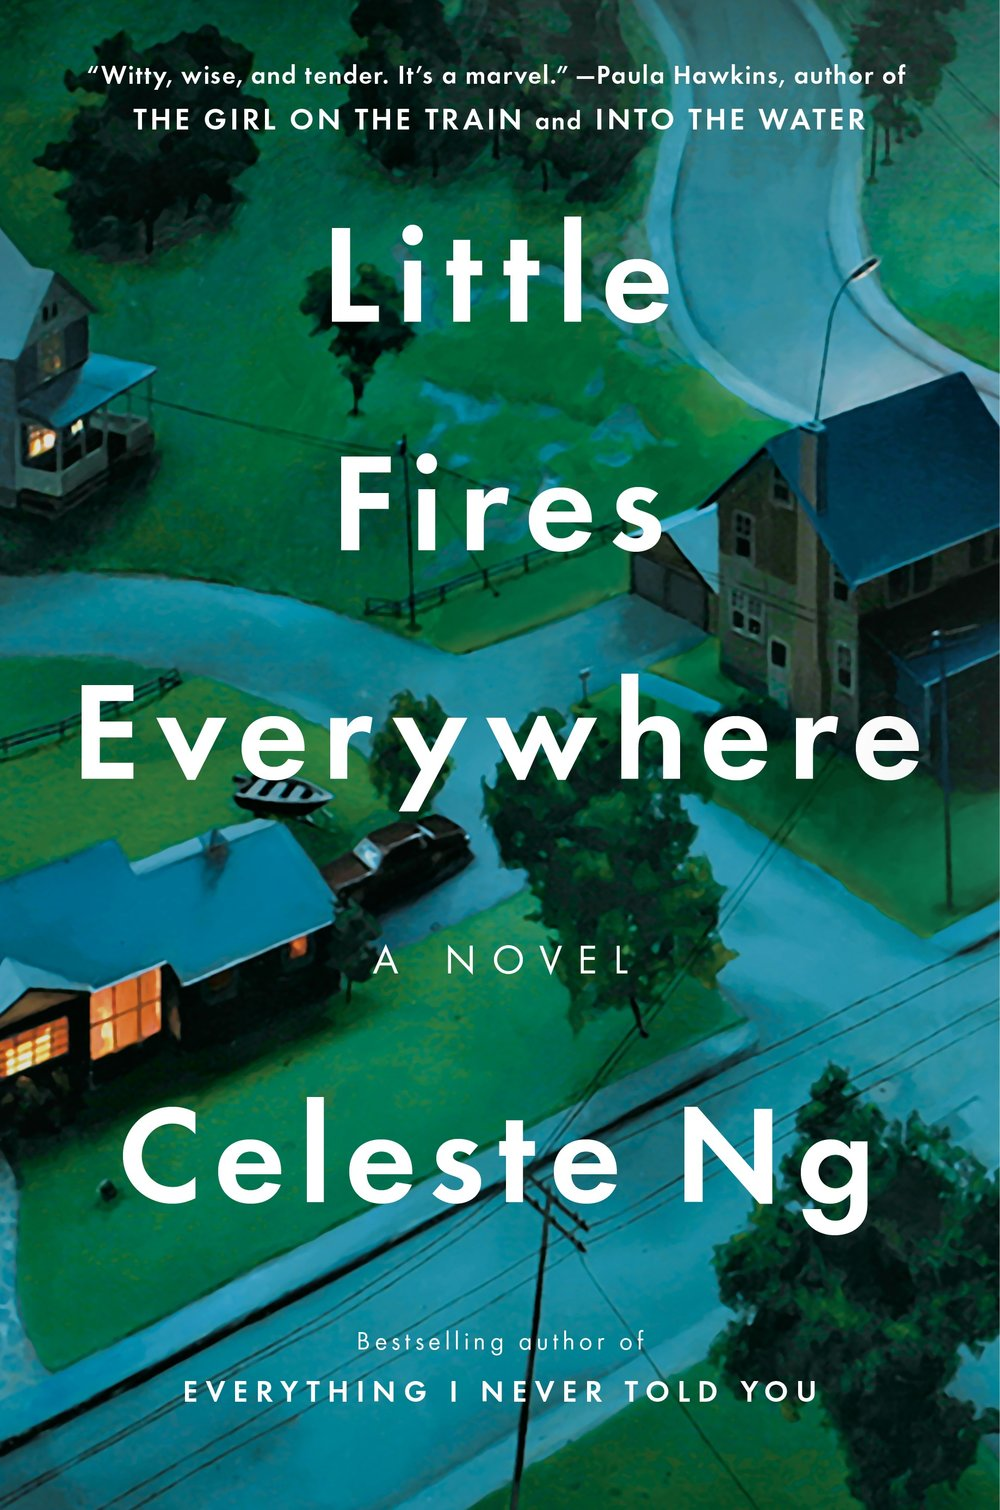 Celeste Ng - Little Fires Everywhere